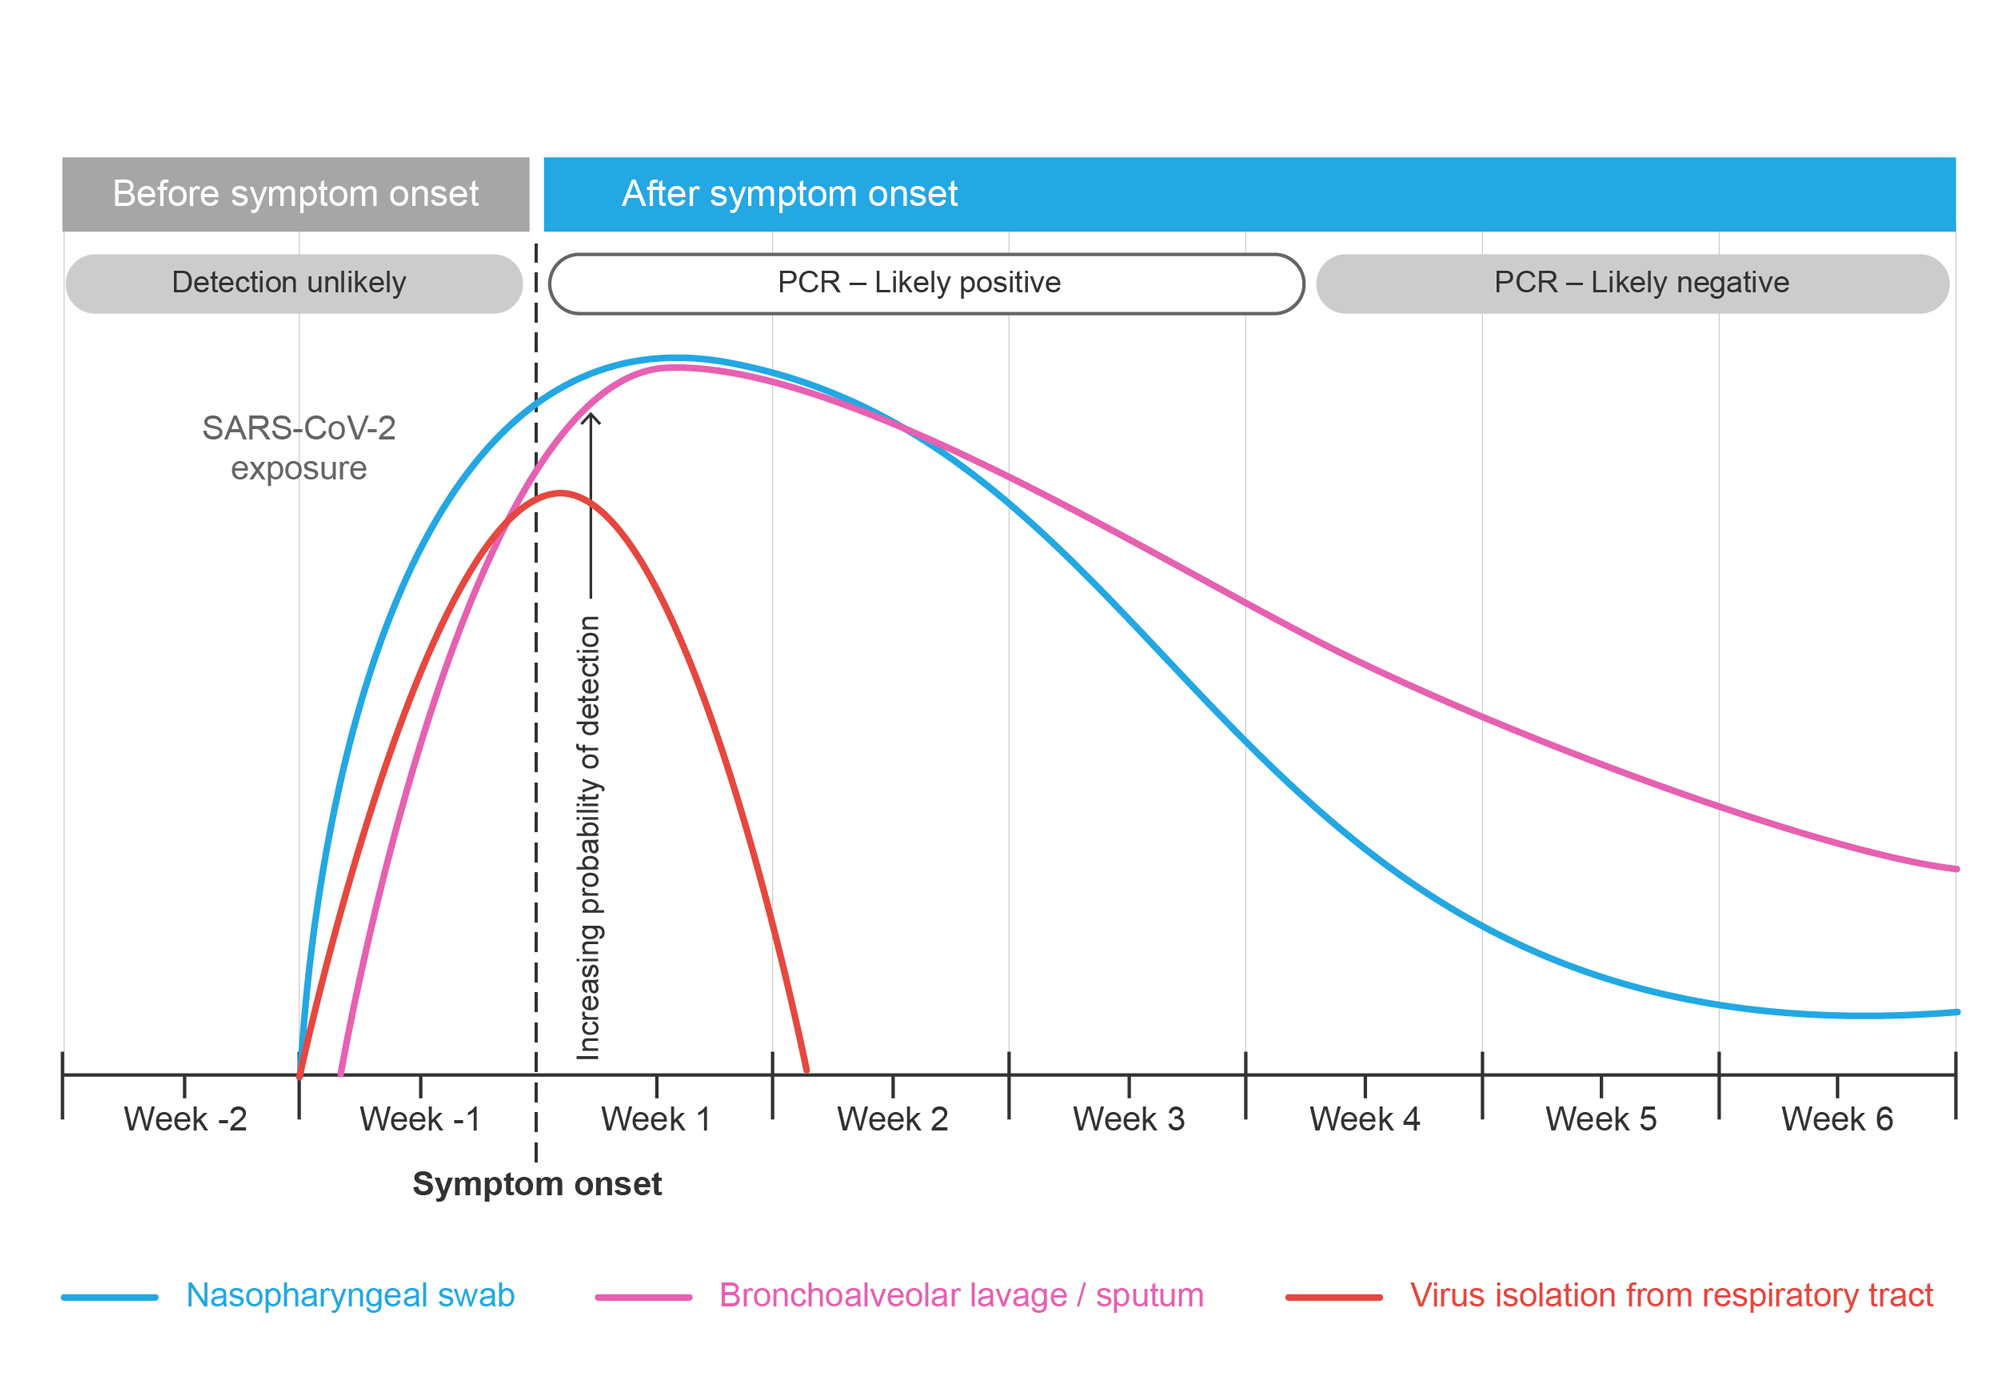 Graph comparing timeline for isolating SARS-CoV-2 in laboratory and positive RT-PCR results with nasopharyngeal and bronchoalveolar lavage or sputum specimens.